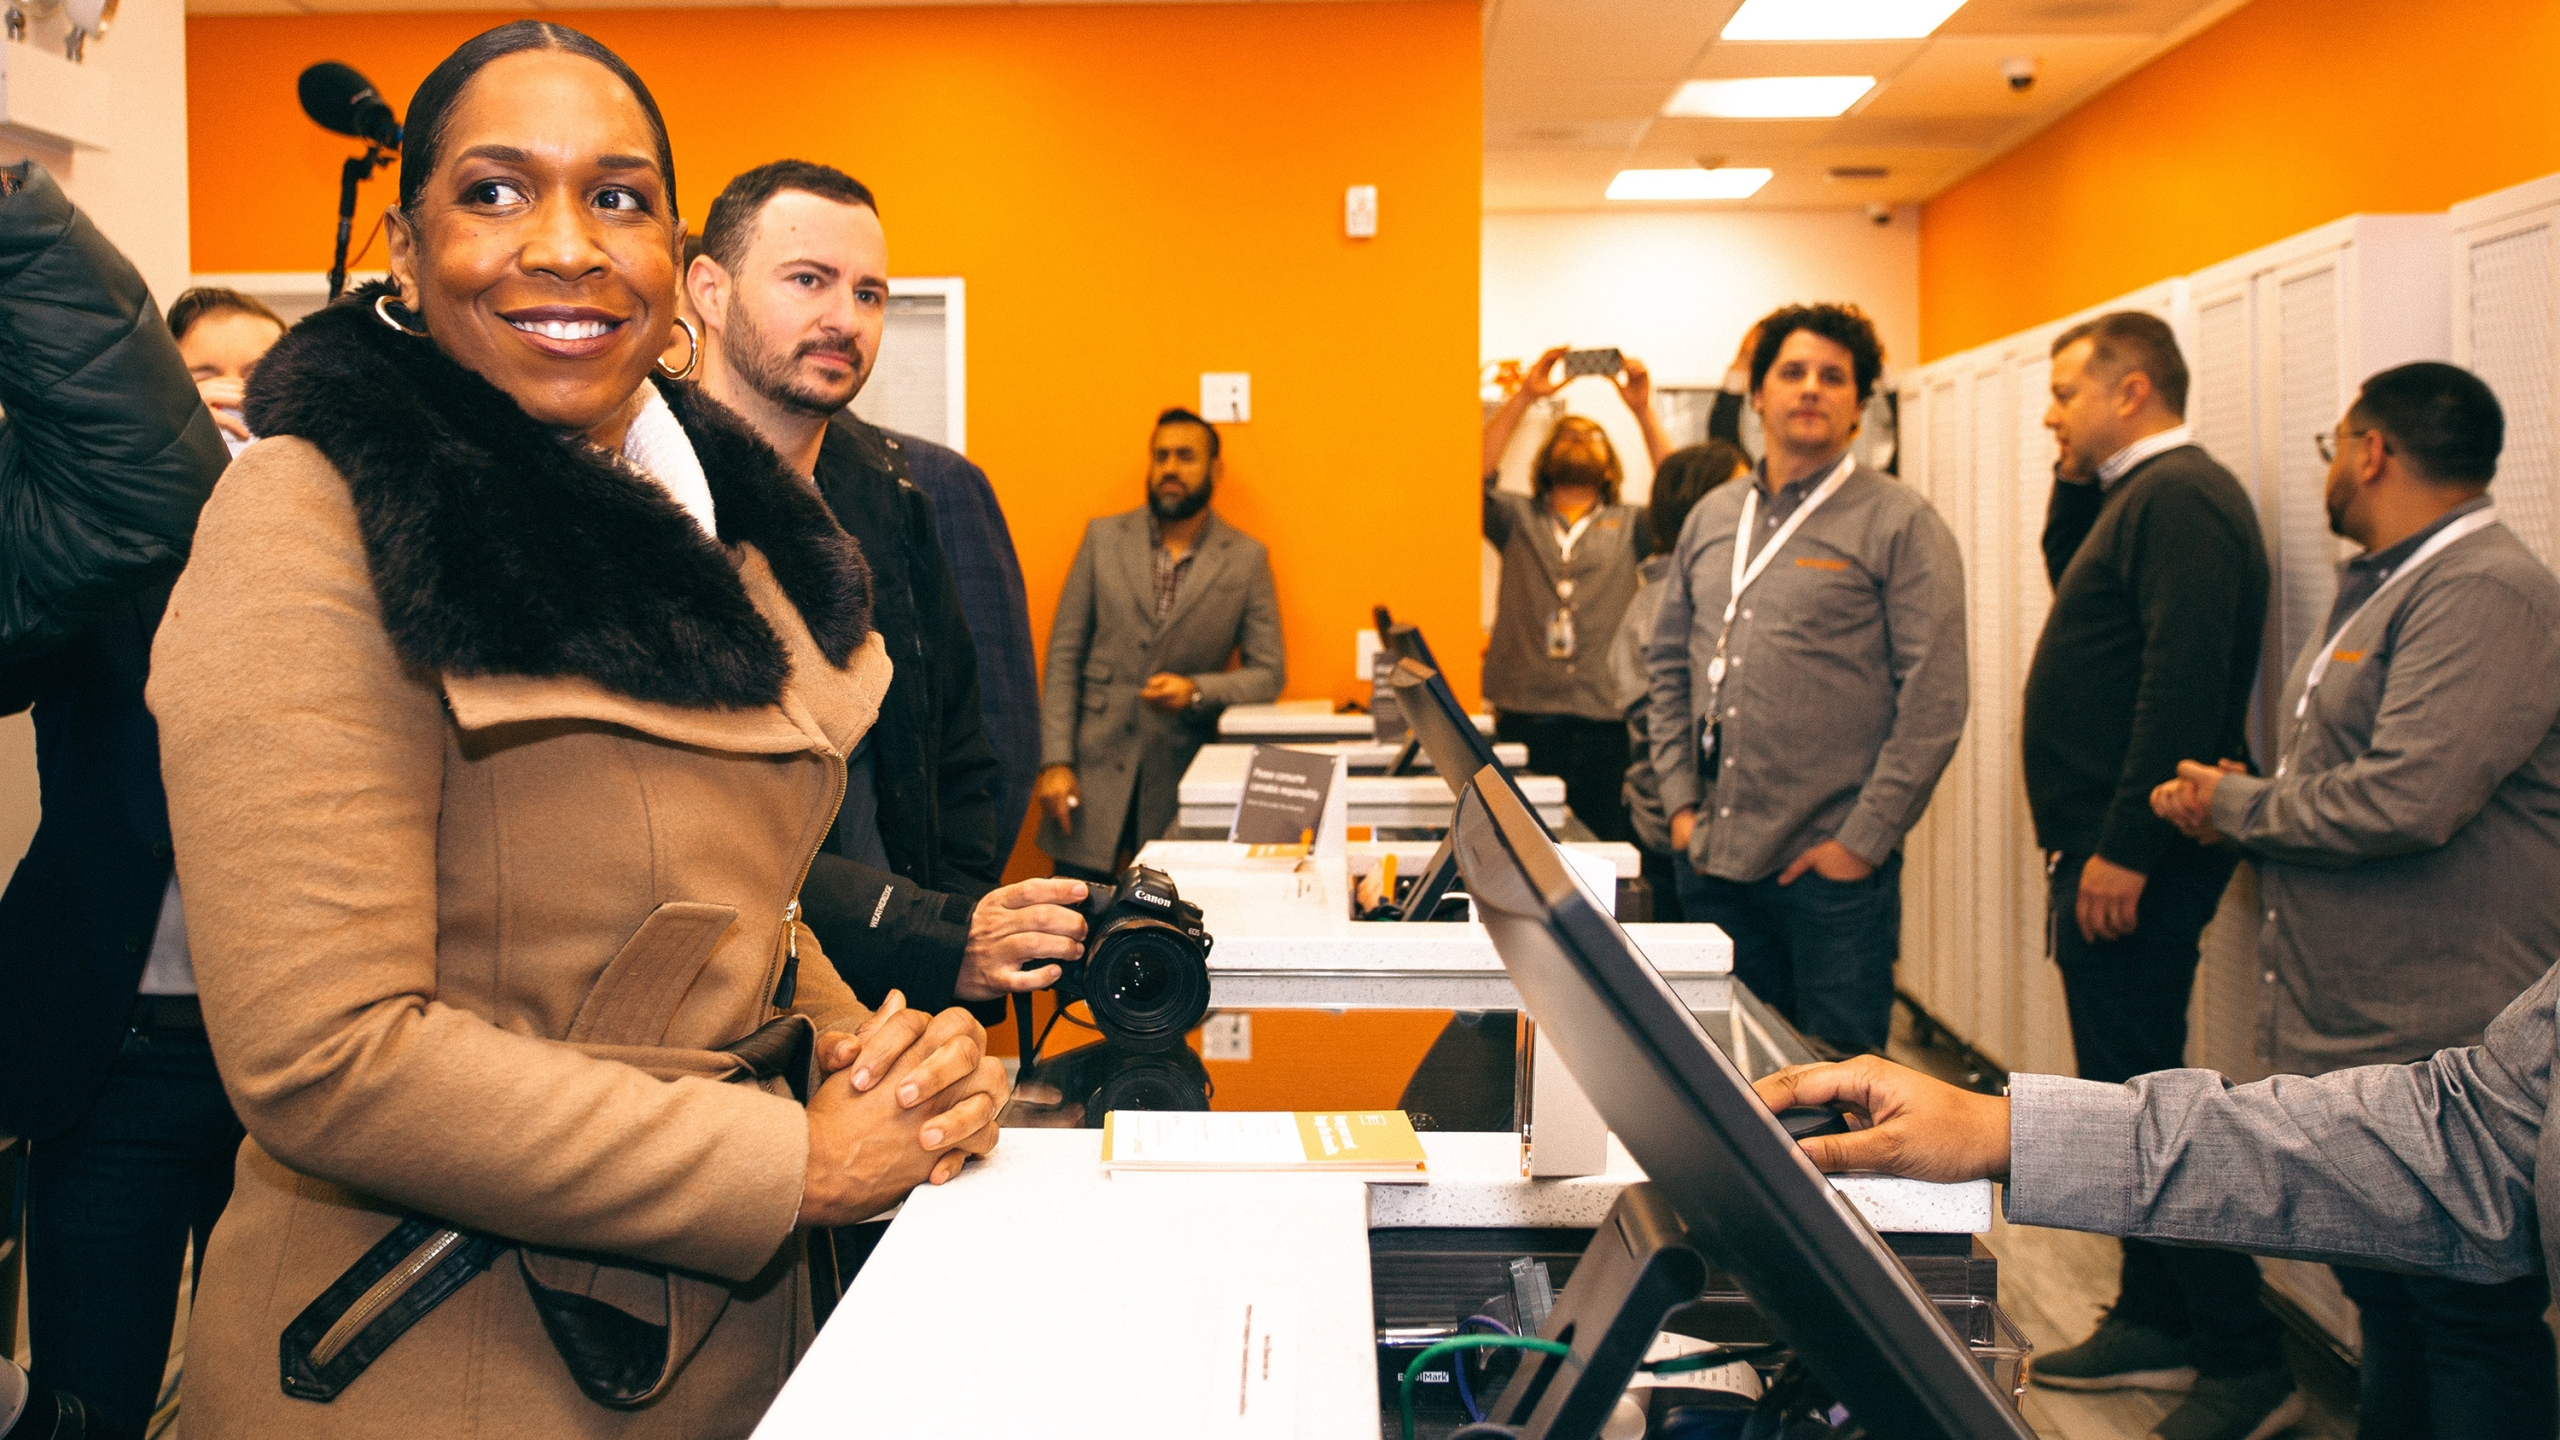 Illinois Lt. Governor Juliana Stratton was among hundreds of early morning customers at a Chicago marijuana dispensary on the first day of legal recreational sales in the state, according to a release from Cresco Labs, owner of Sunnyside Dispensary. (Credit: CNN)